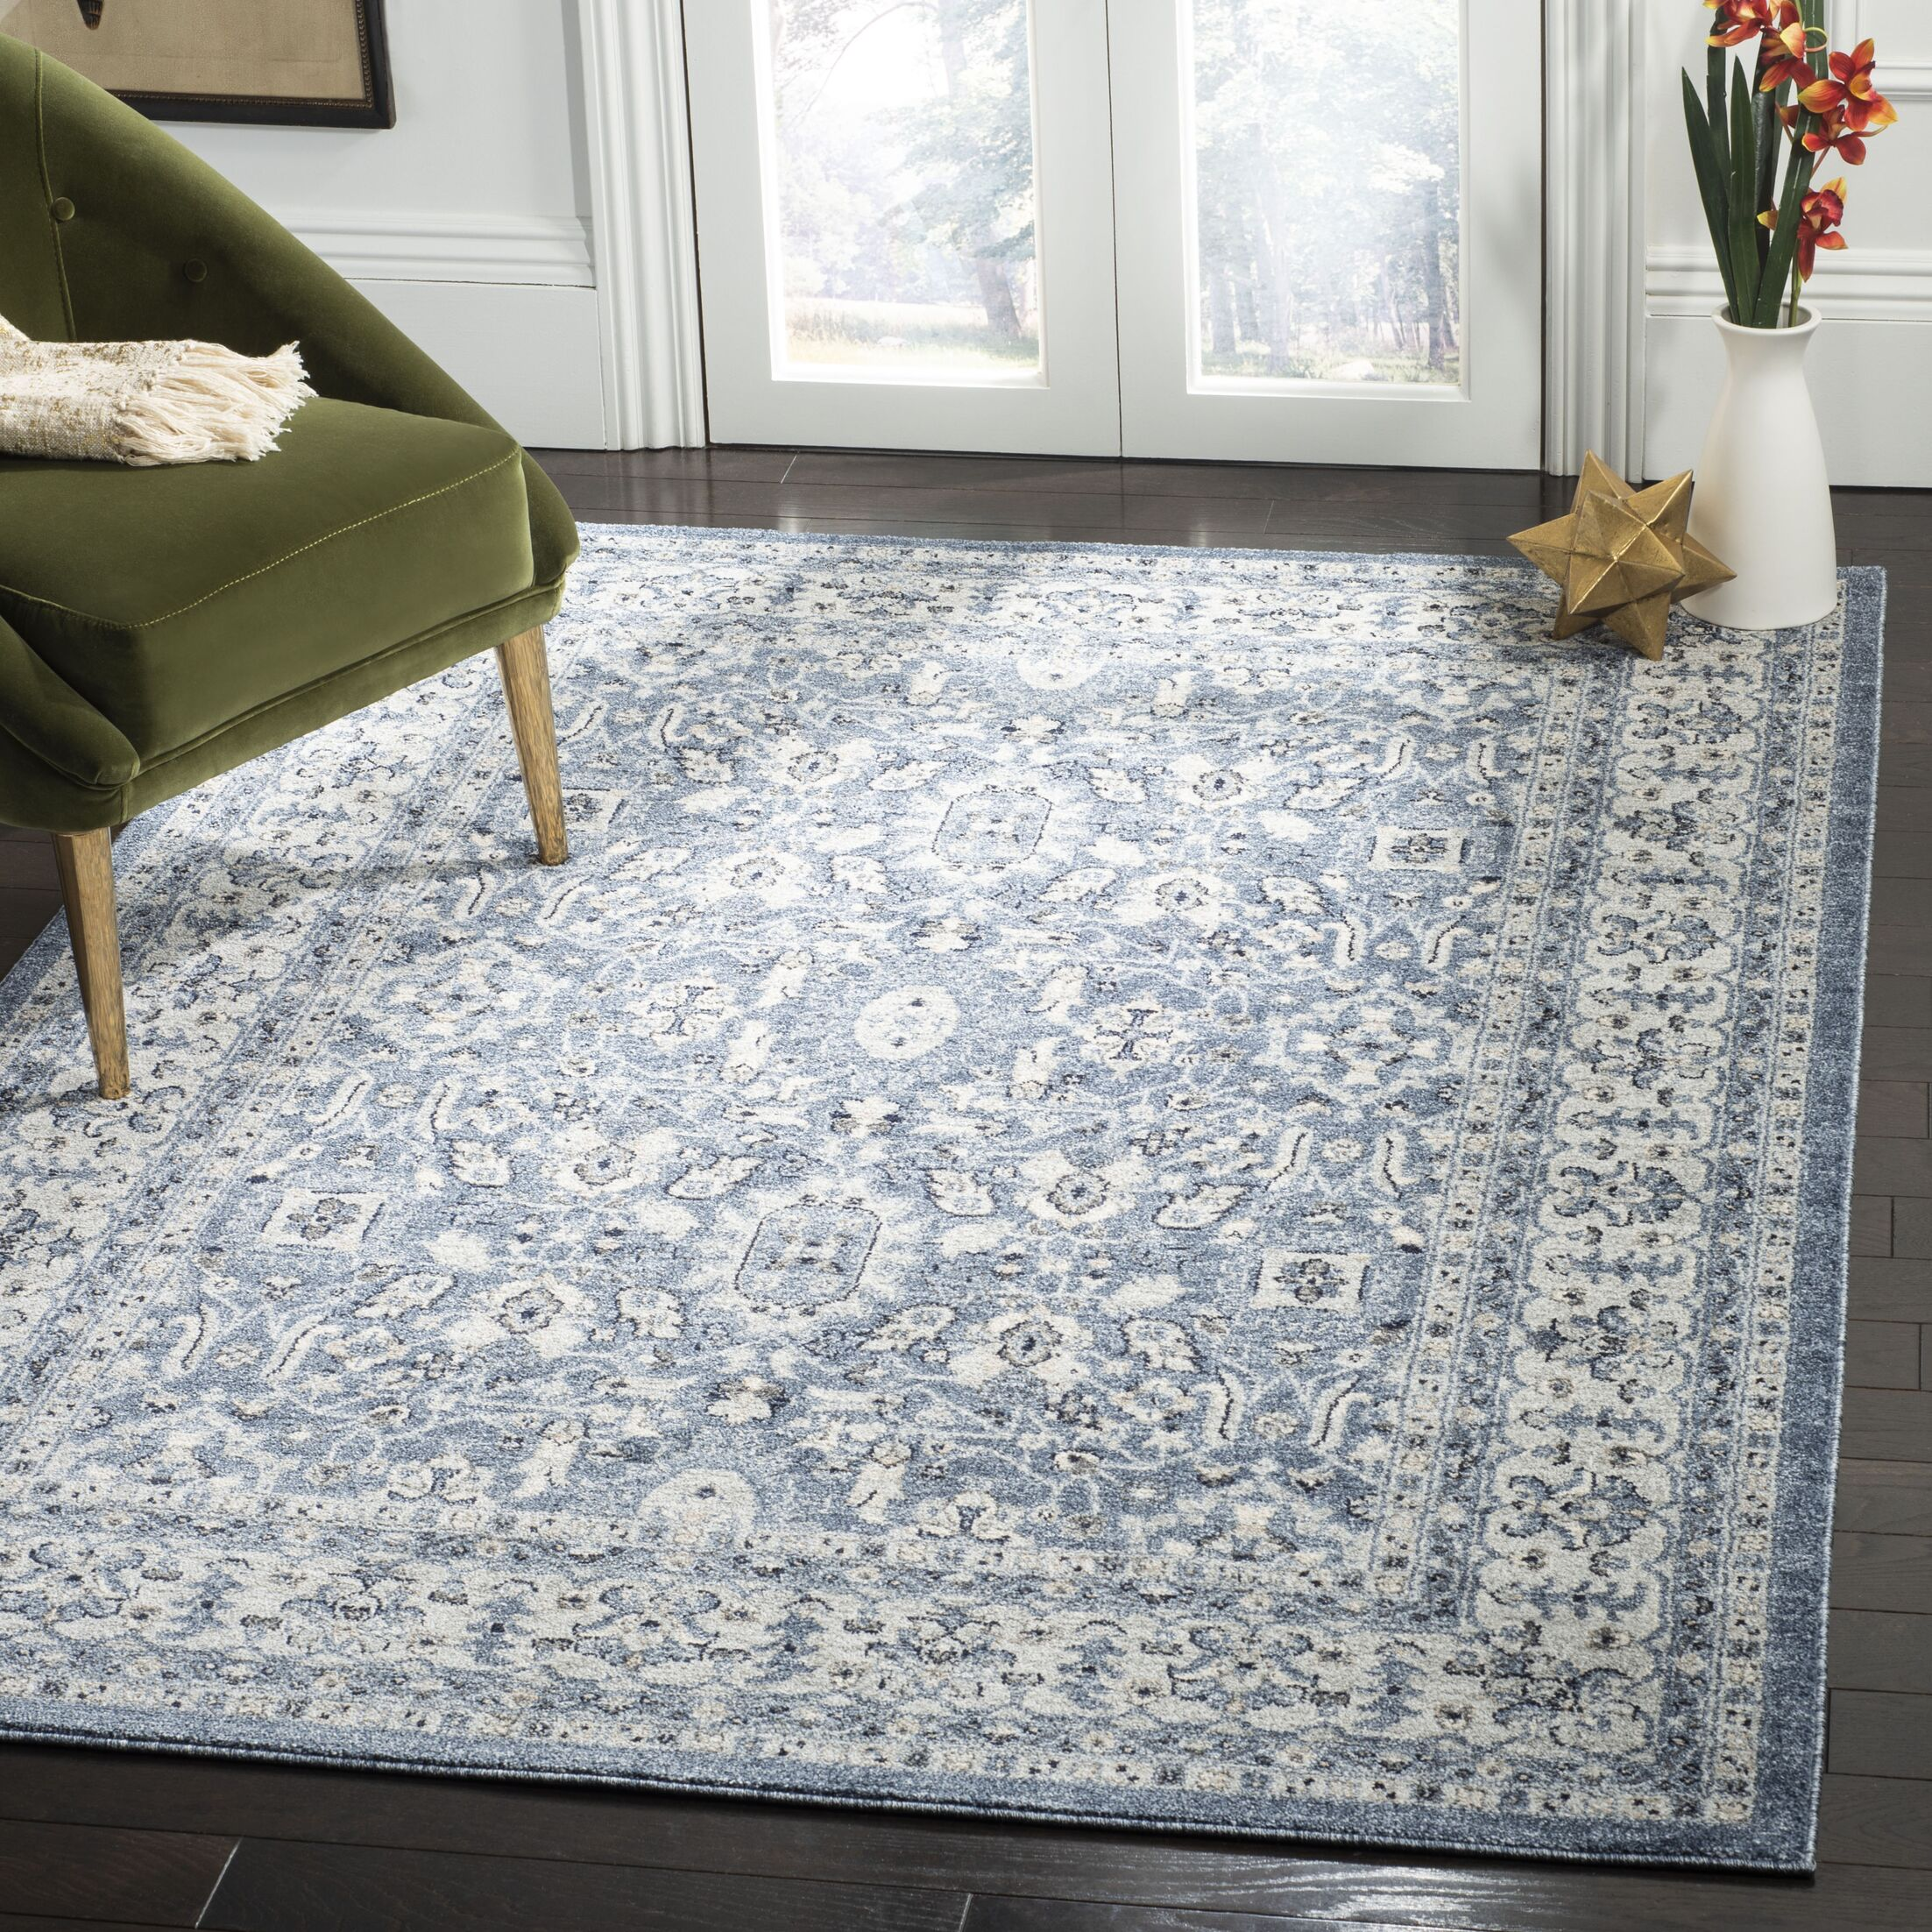 Jase Navy/Creme Area Rug Rug Size: Rectangle 8' x 10'